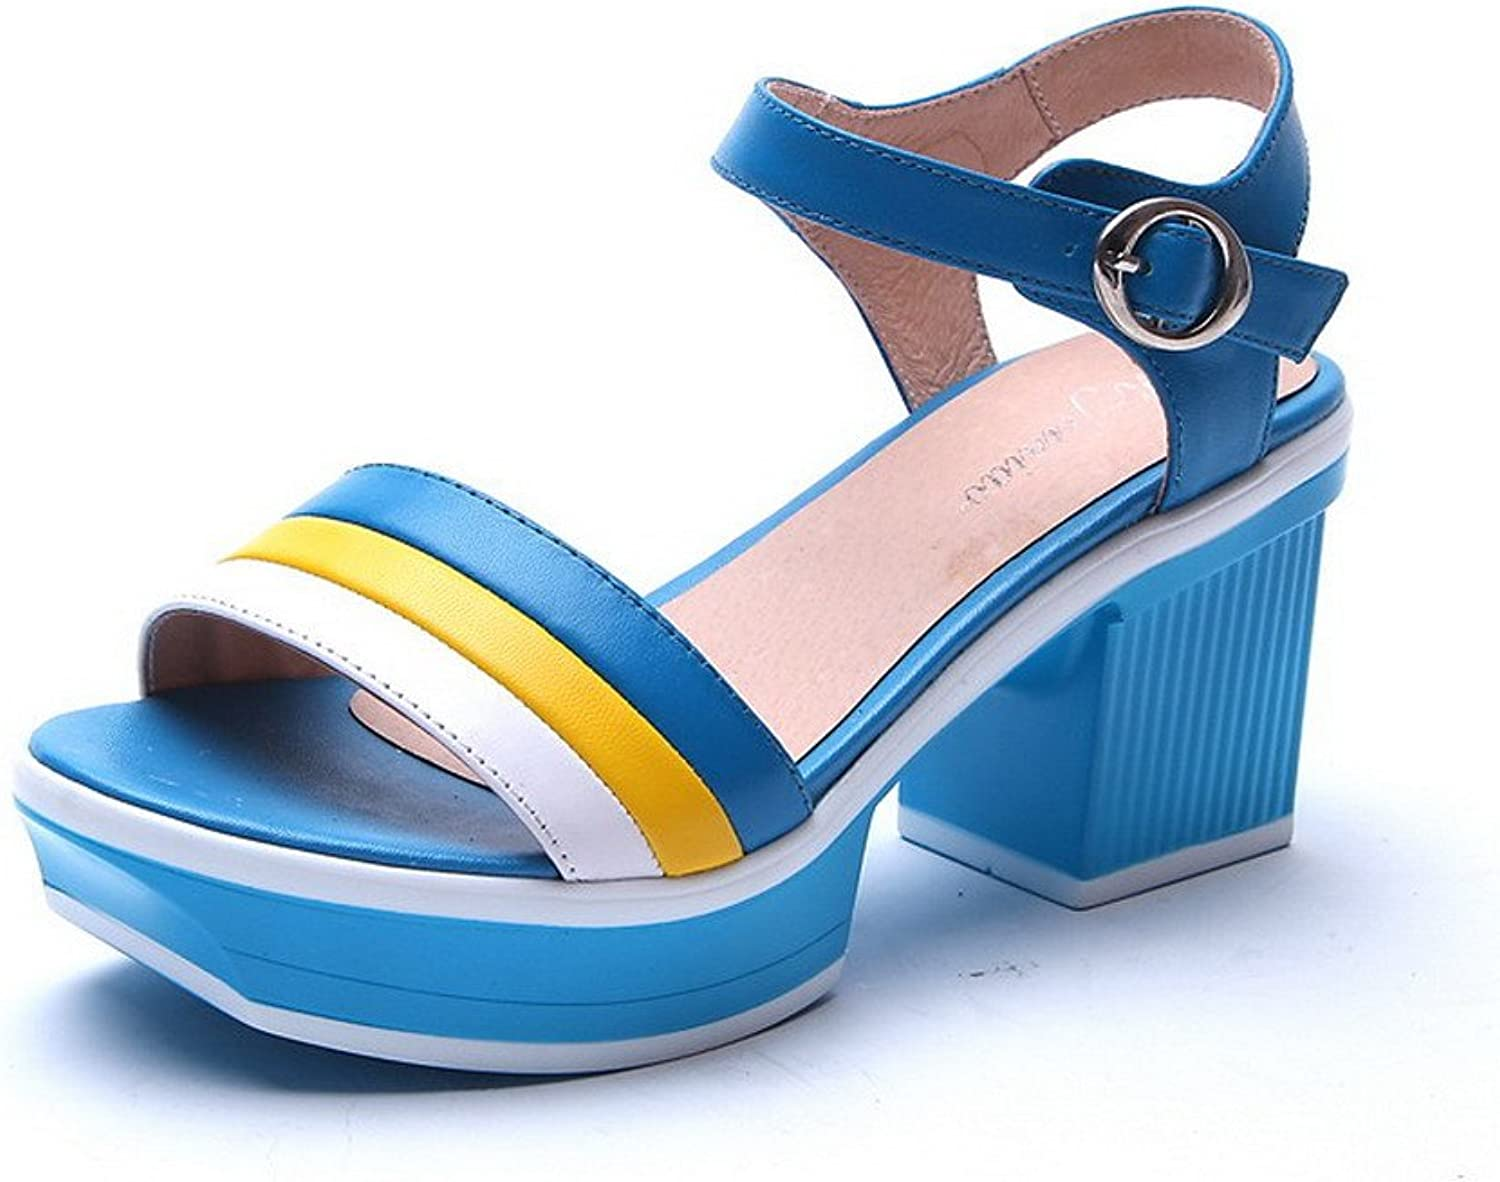 WeiPoot Women Open Toe High Heels Cow Leather Soft Material Assorted colors Sandals, bluee, 7.5 B(M) US